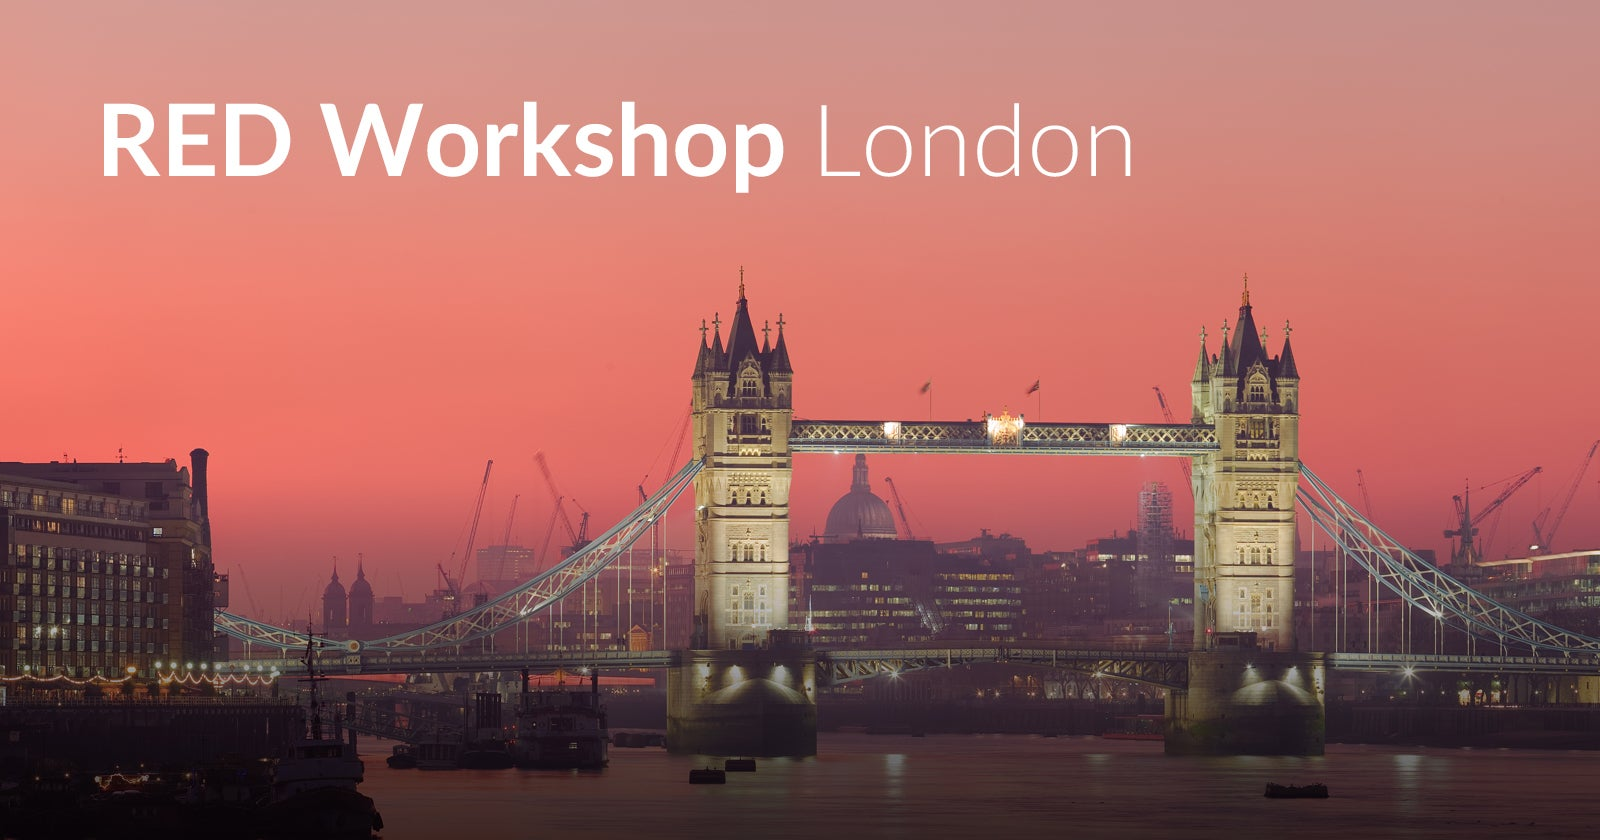 RED Workshop London